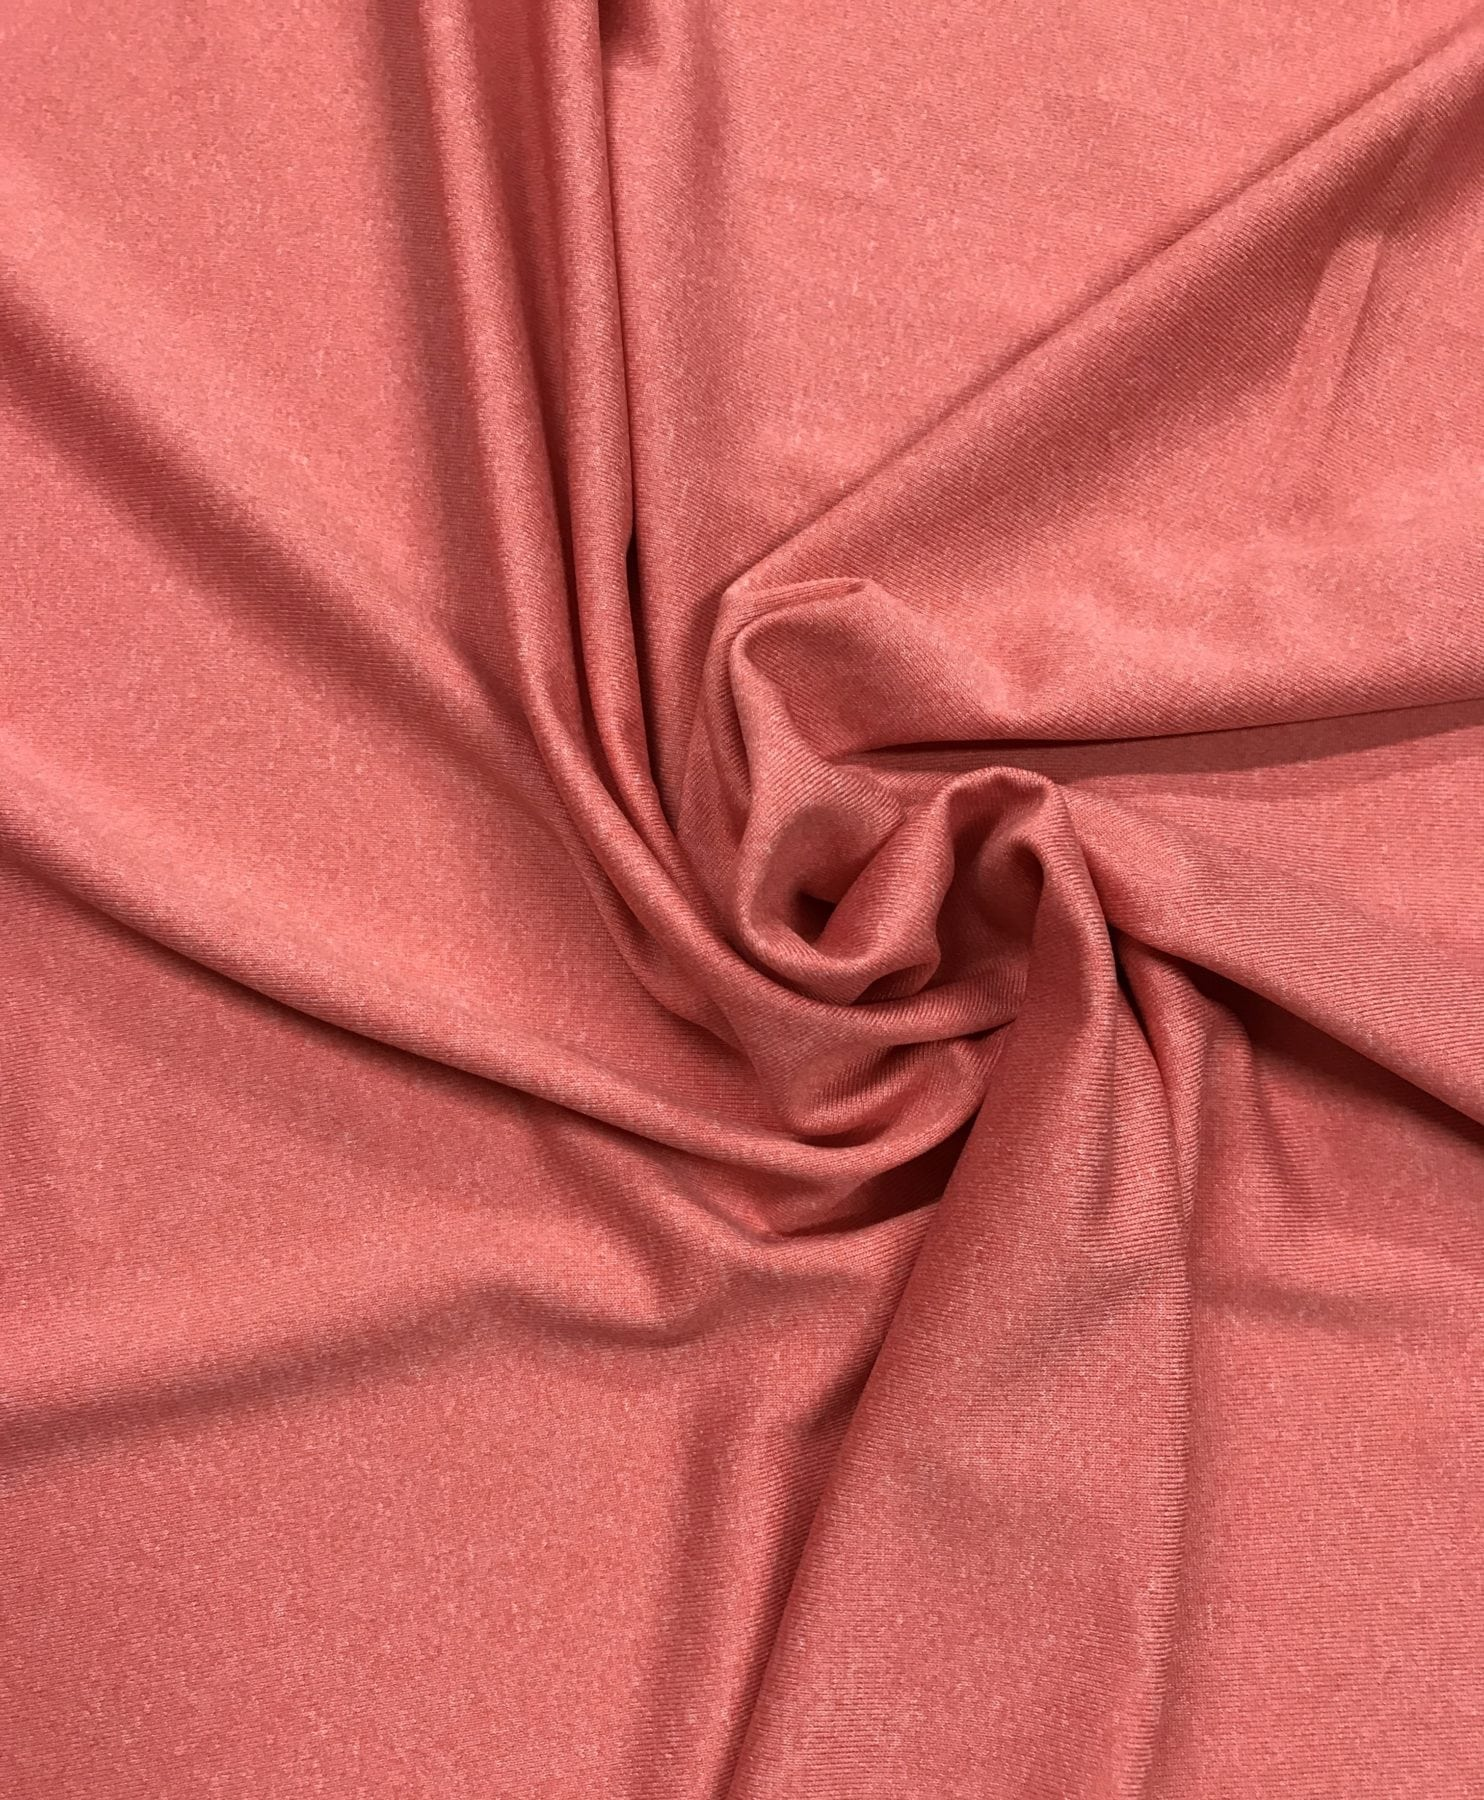 Soft Active Wear Apparel Spandex, Soft Active Wear Solid, solid activewear fabric, muted color fabrics, muted color spandex fabric